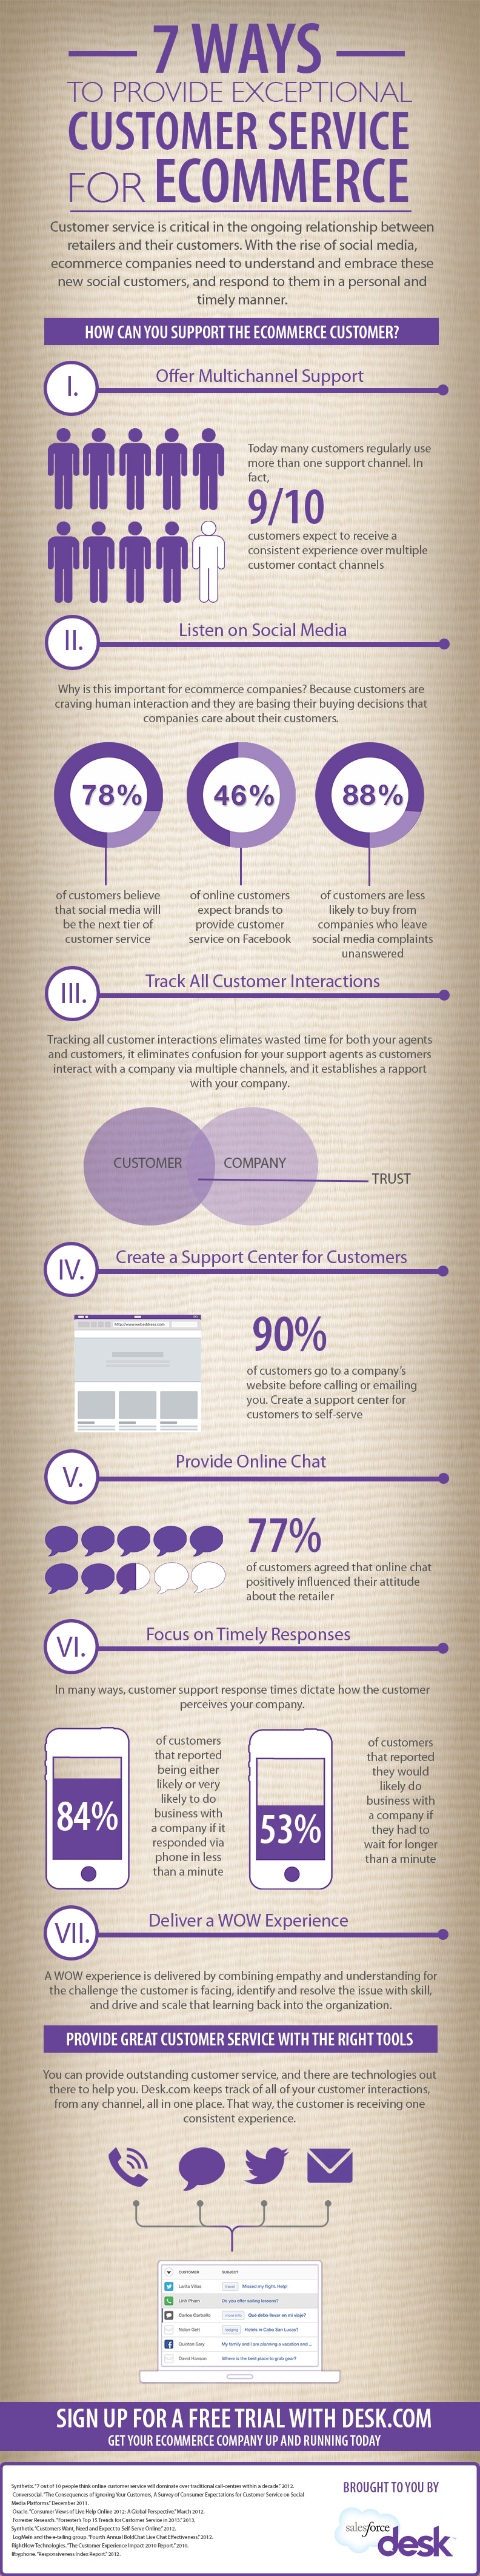 ecommerceinfographic